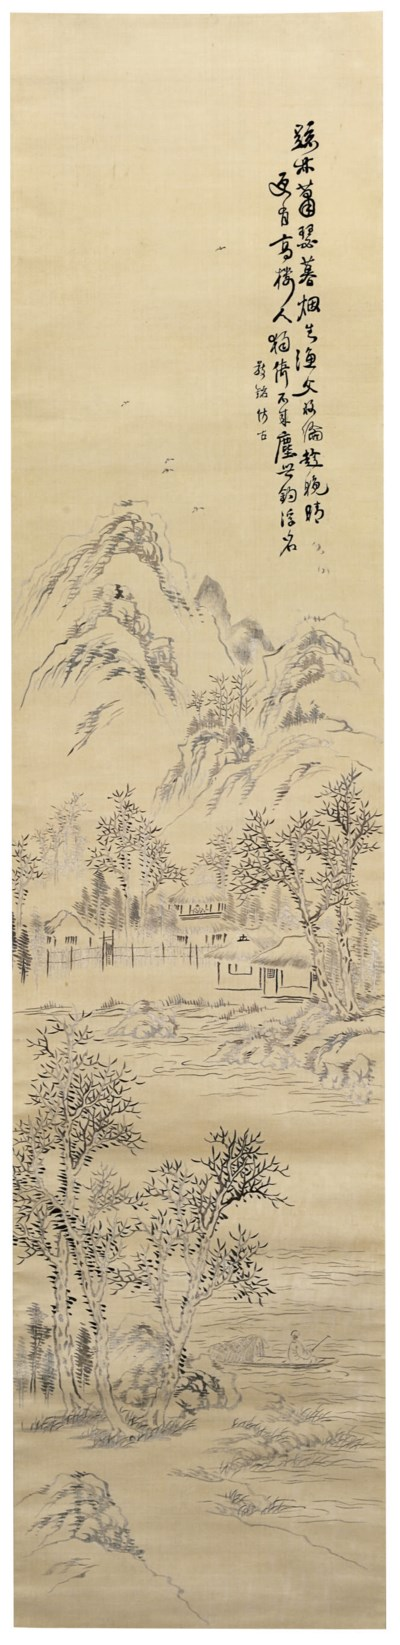 AN EMBROIDERED LANDSCAPE HANGI